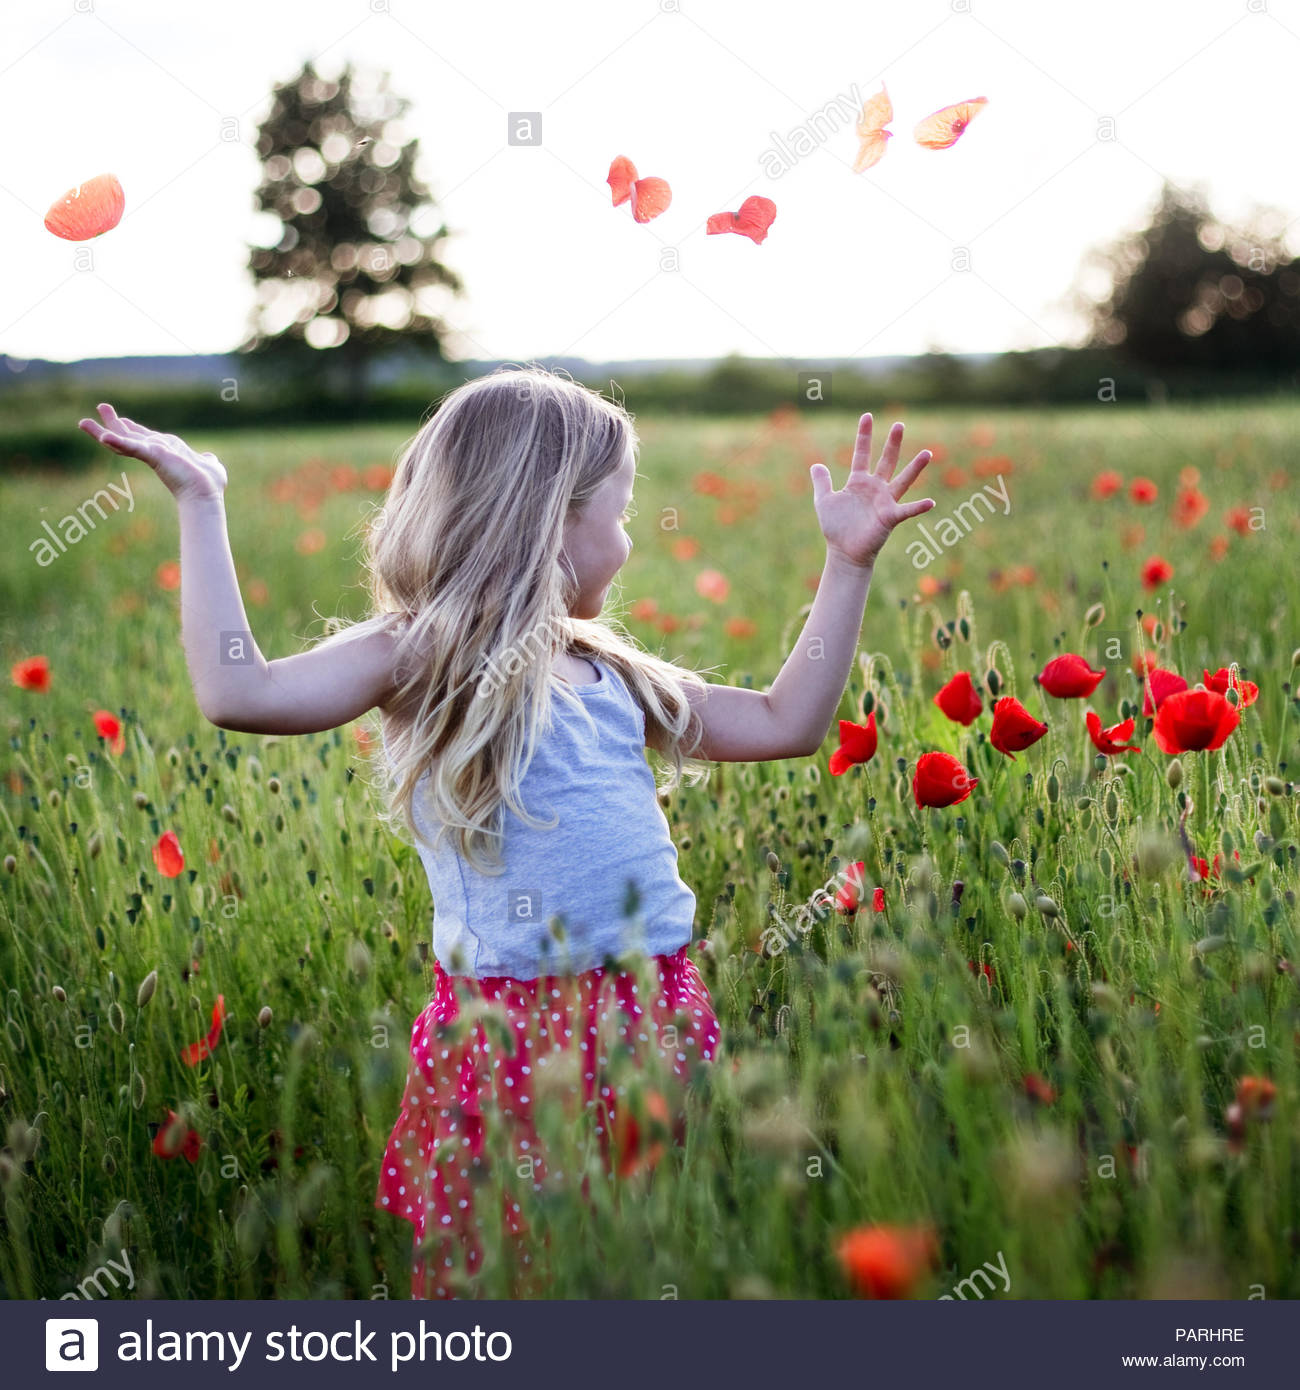 A girl playing in a field full of red poppy flowers - Stock Image